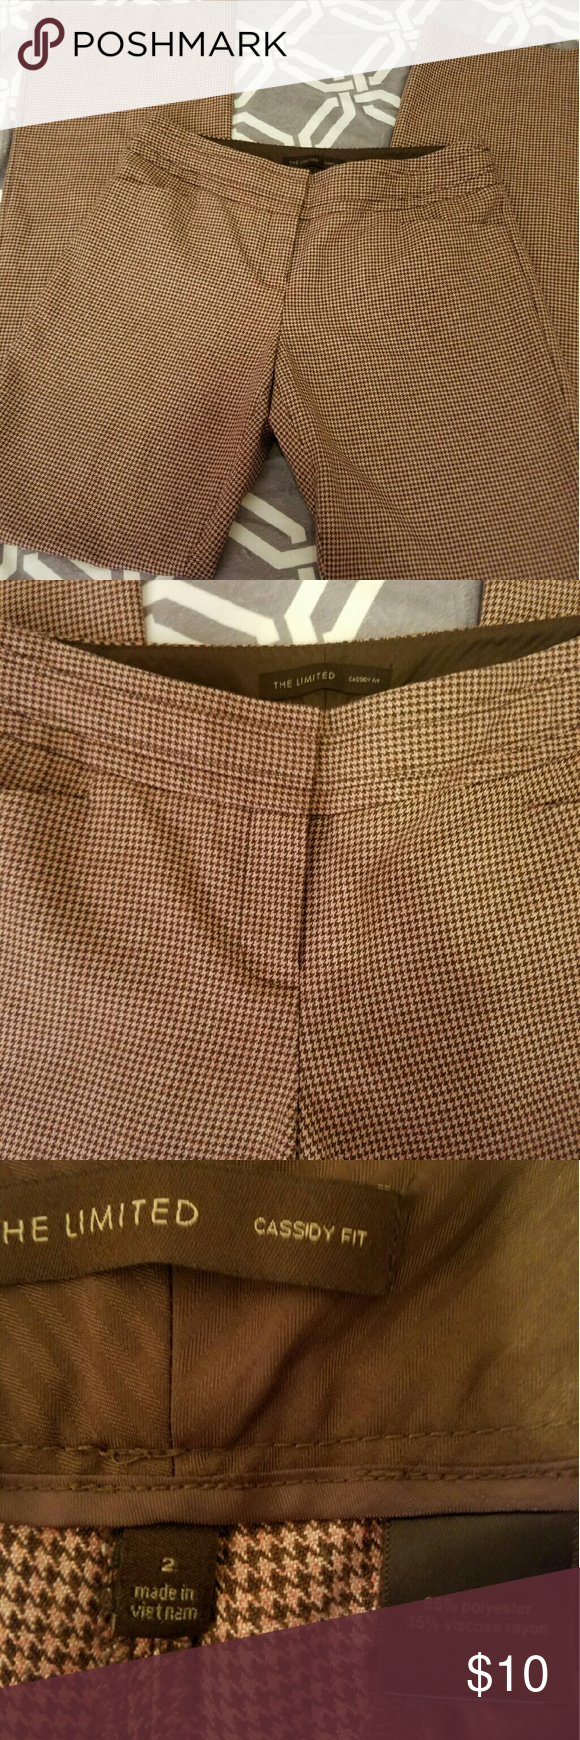 Limited Dress Pants Size 2. Cassify Fit. These are a cool salmon and brown color. Loved them during fall and winter months :) in euc. No flaws. The Limited Pants Trousers